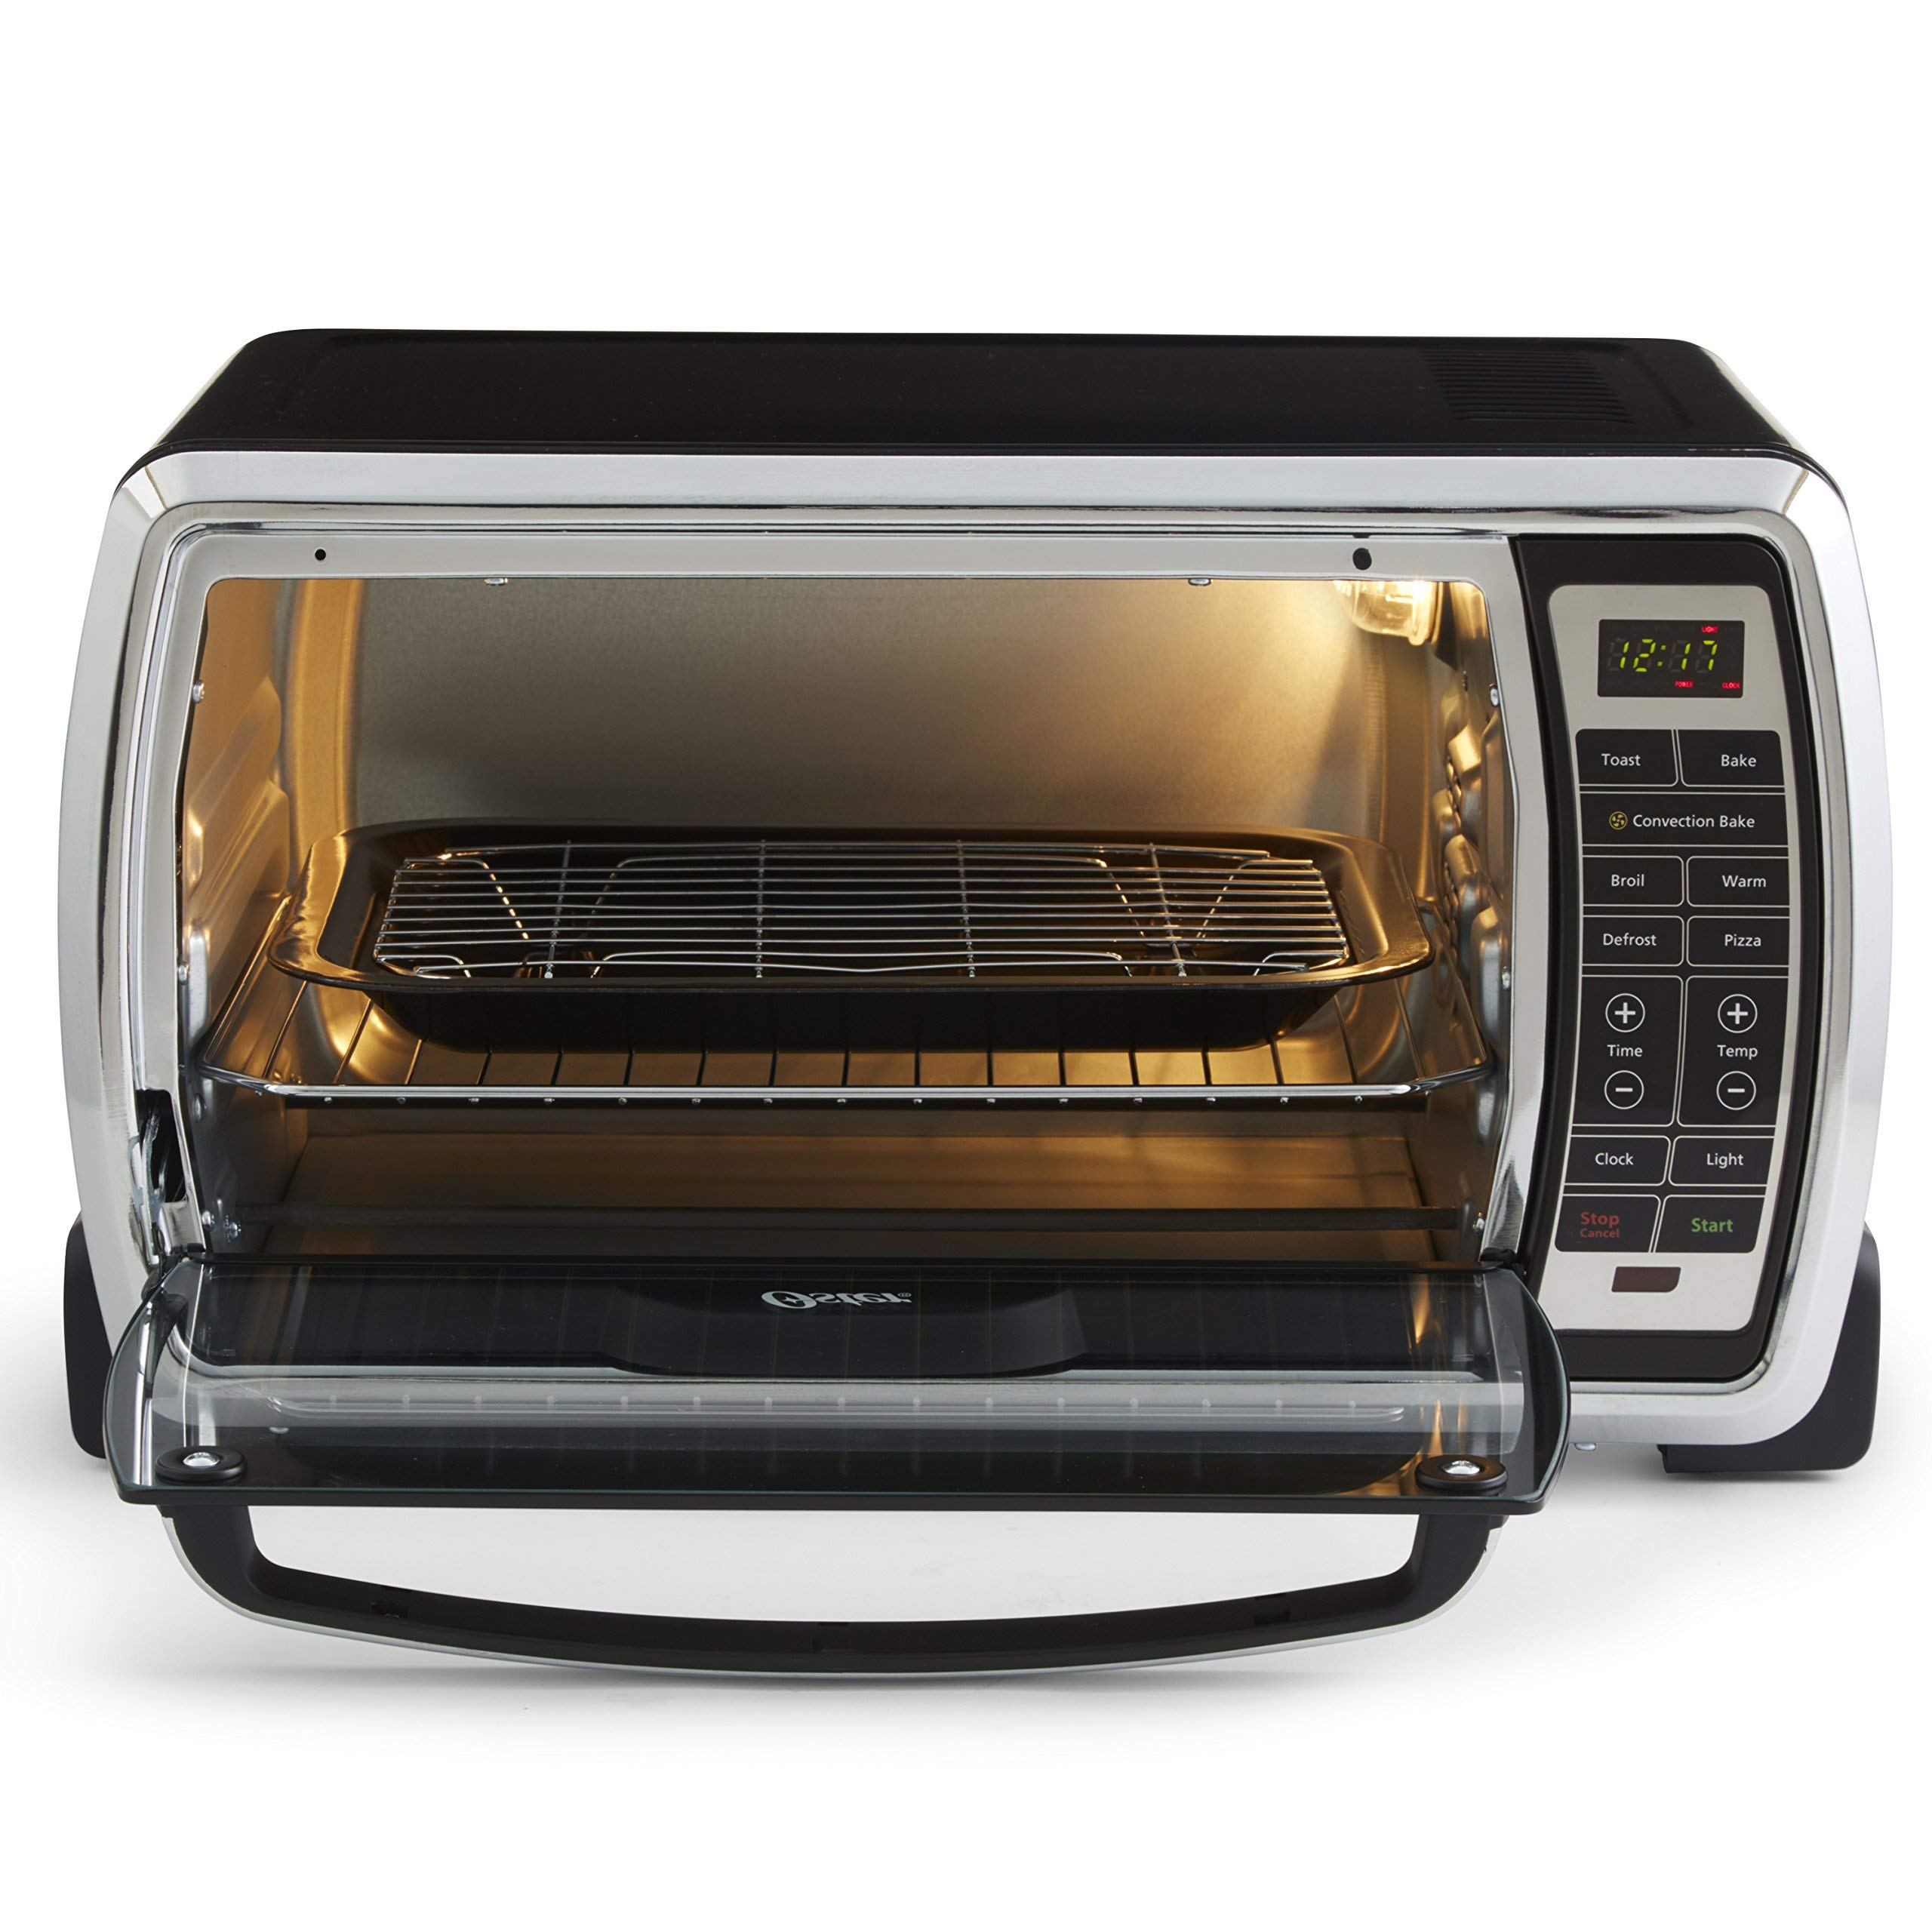 Oster Large Digital Countertop Convection Toaster Oven, 6 Slice, Black/Polished Stainless (TSSTTVMNDG-SHP-2) (Renewed) by Supportiback (Image #2)